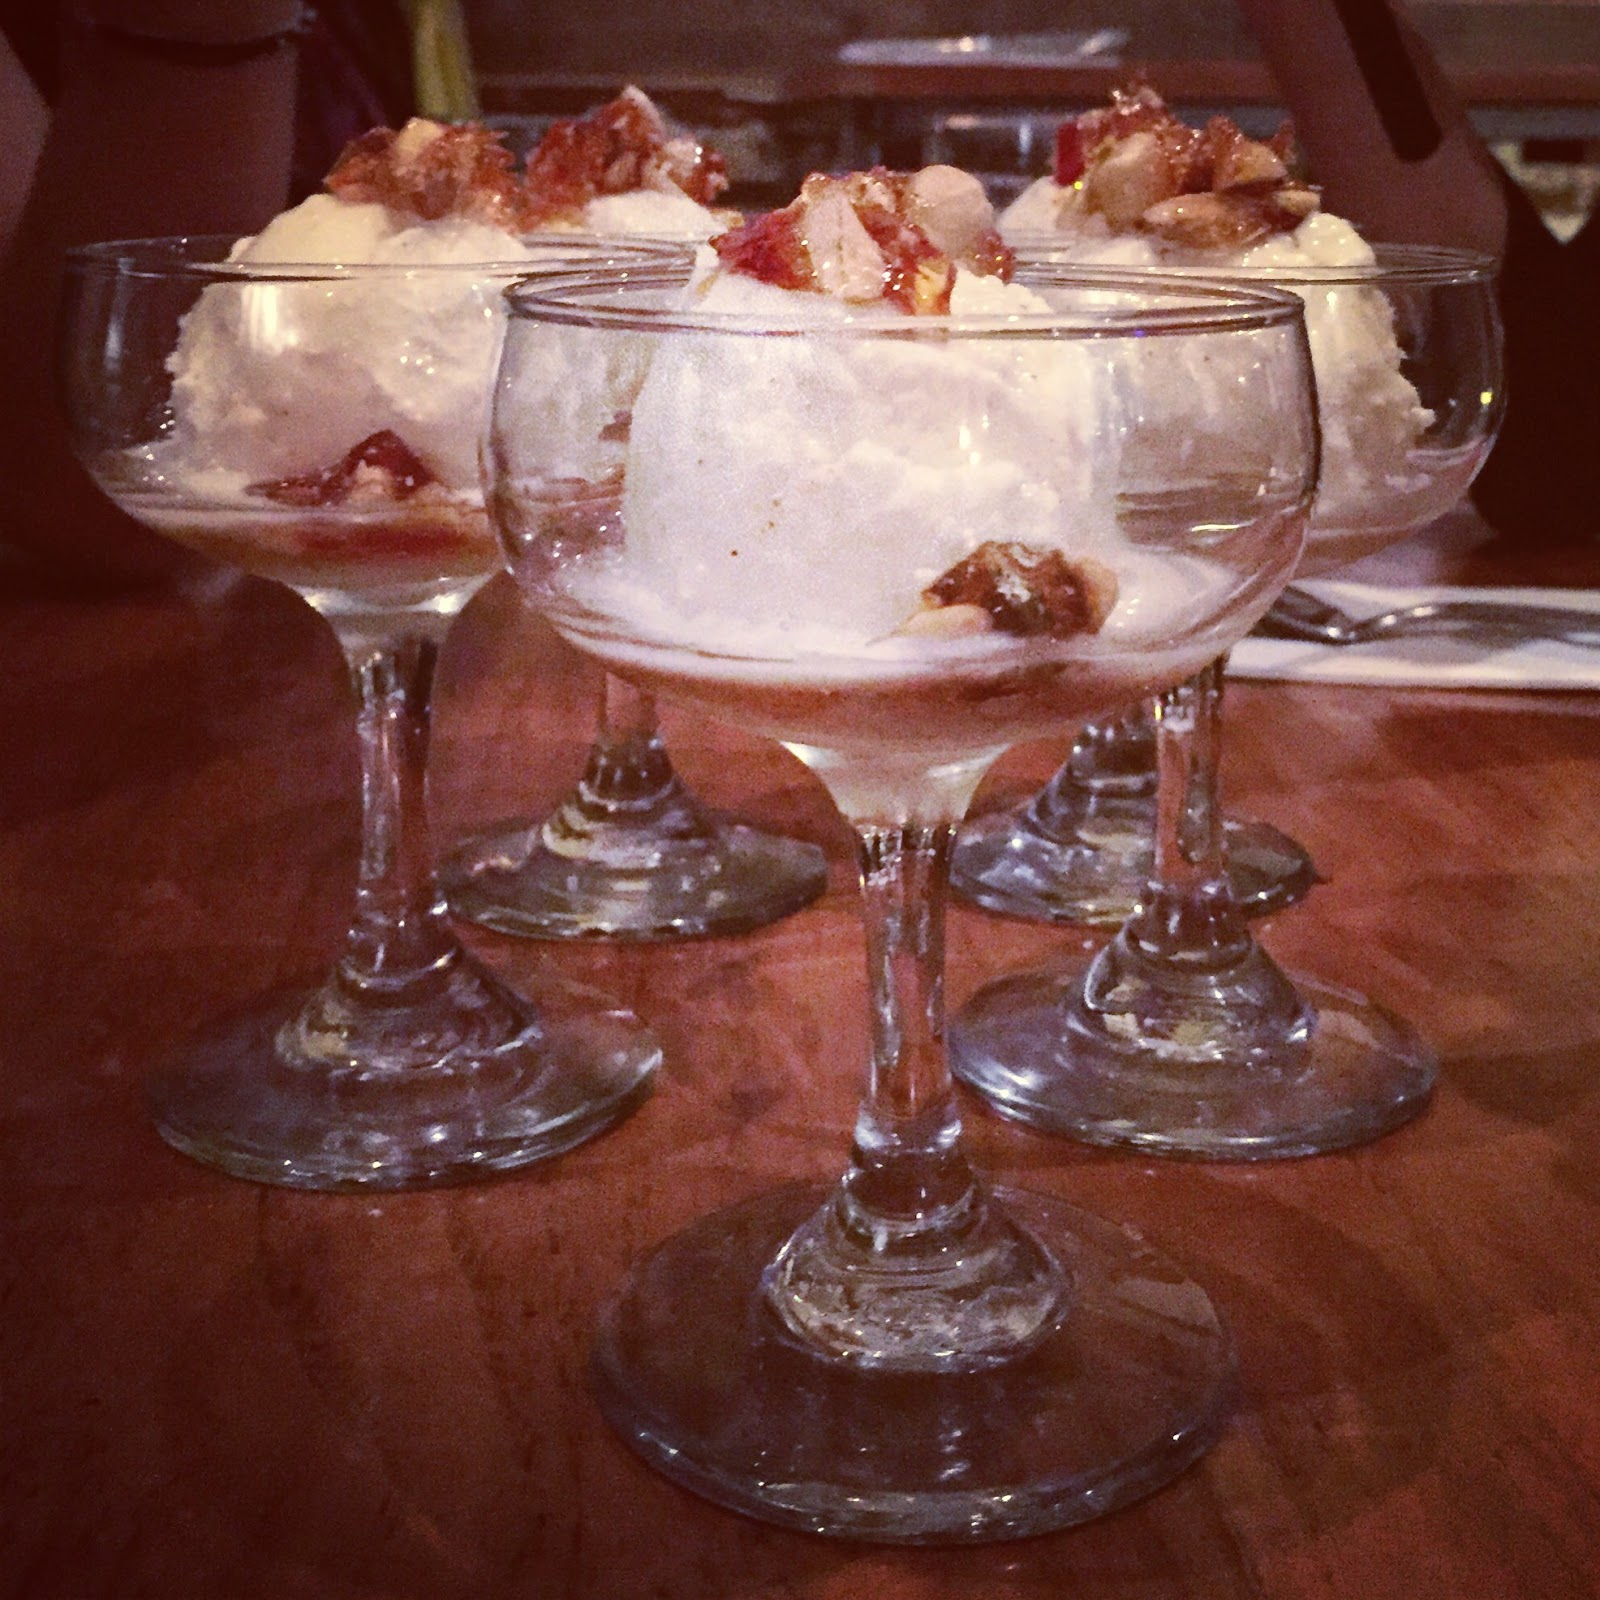 desserts with peanut brittle in cocktail glasses